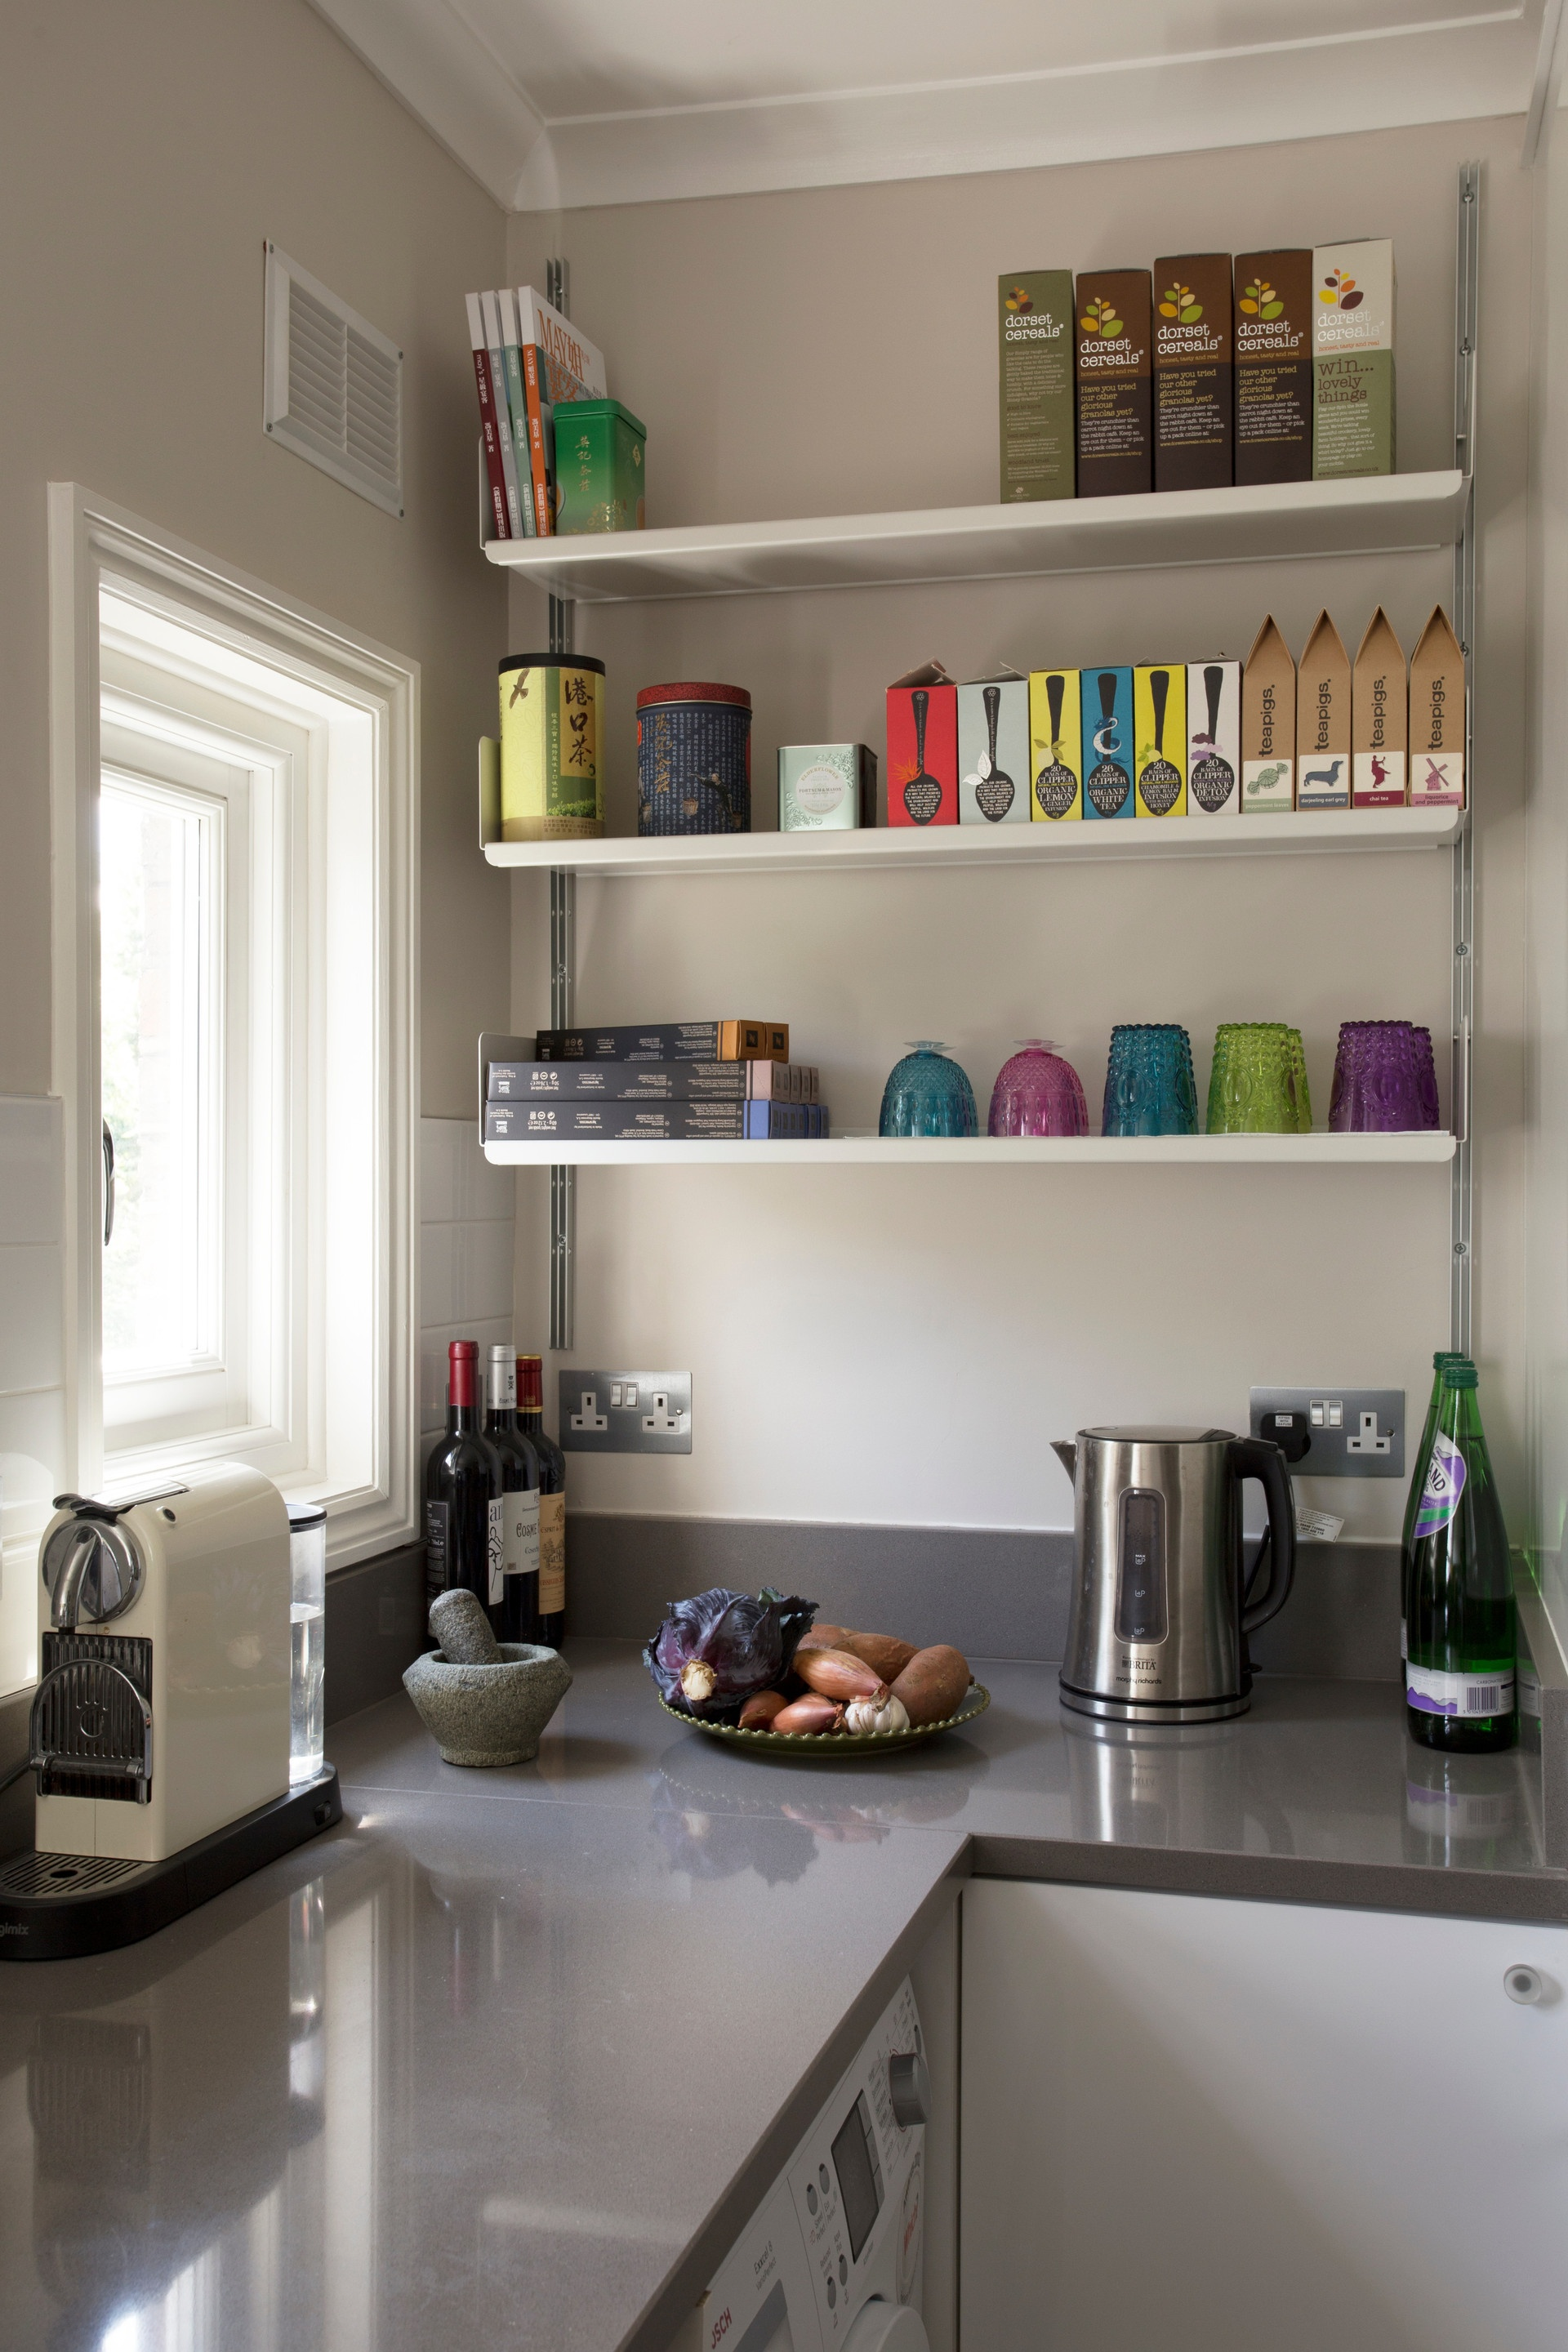 Open shelves replace the heaviness of a kitchen cabinet